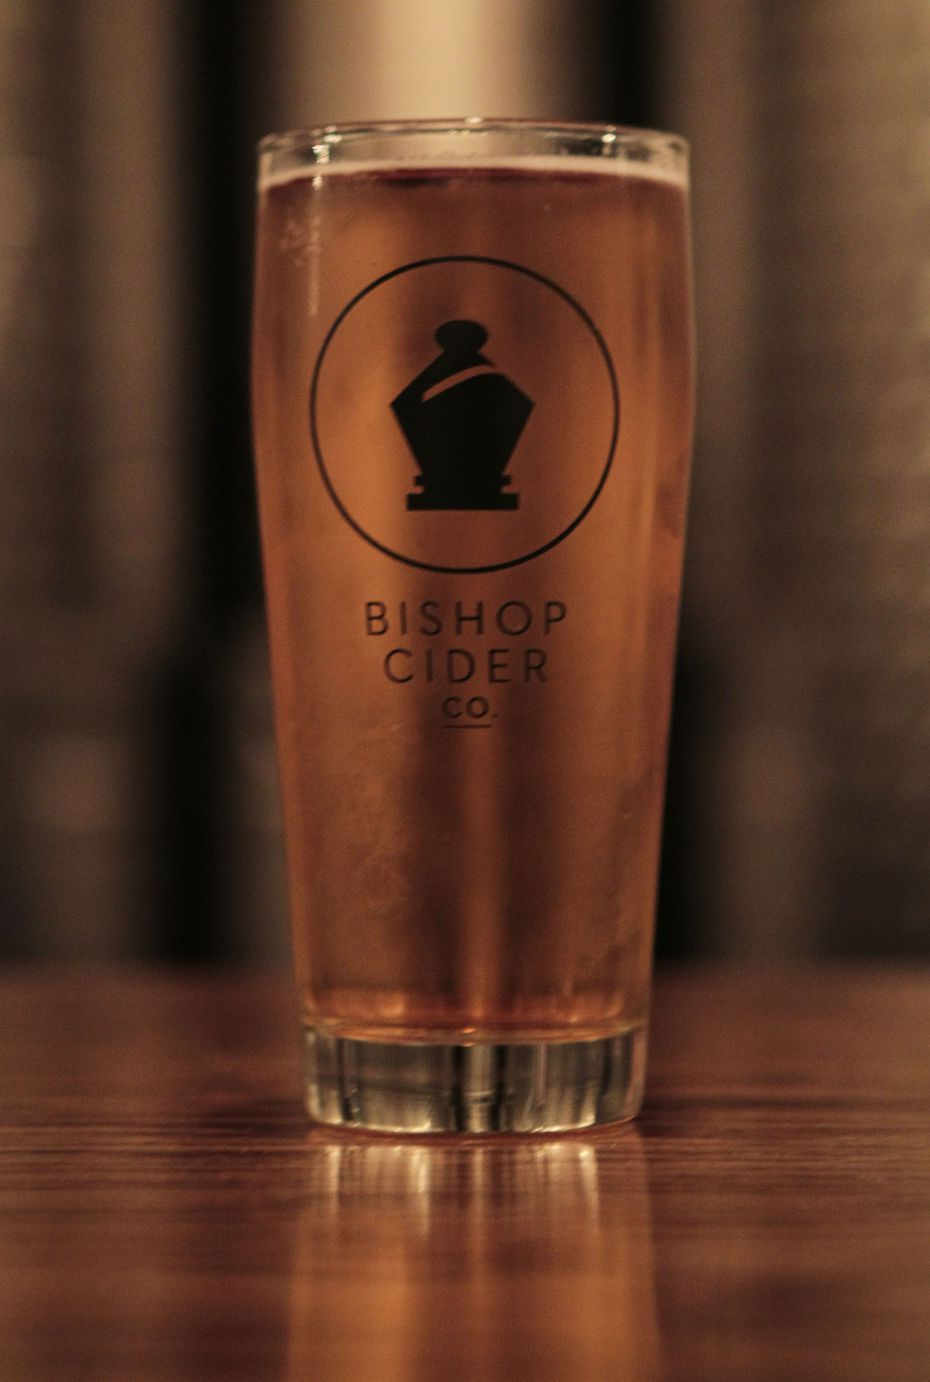 A glass of hard cider on the bar at The Bishop Cider Company in Dallas on Friday, Sept. 19, 2014.